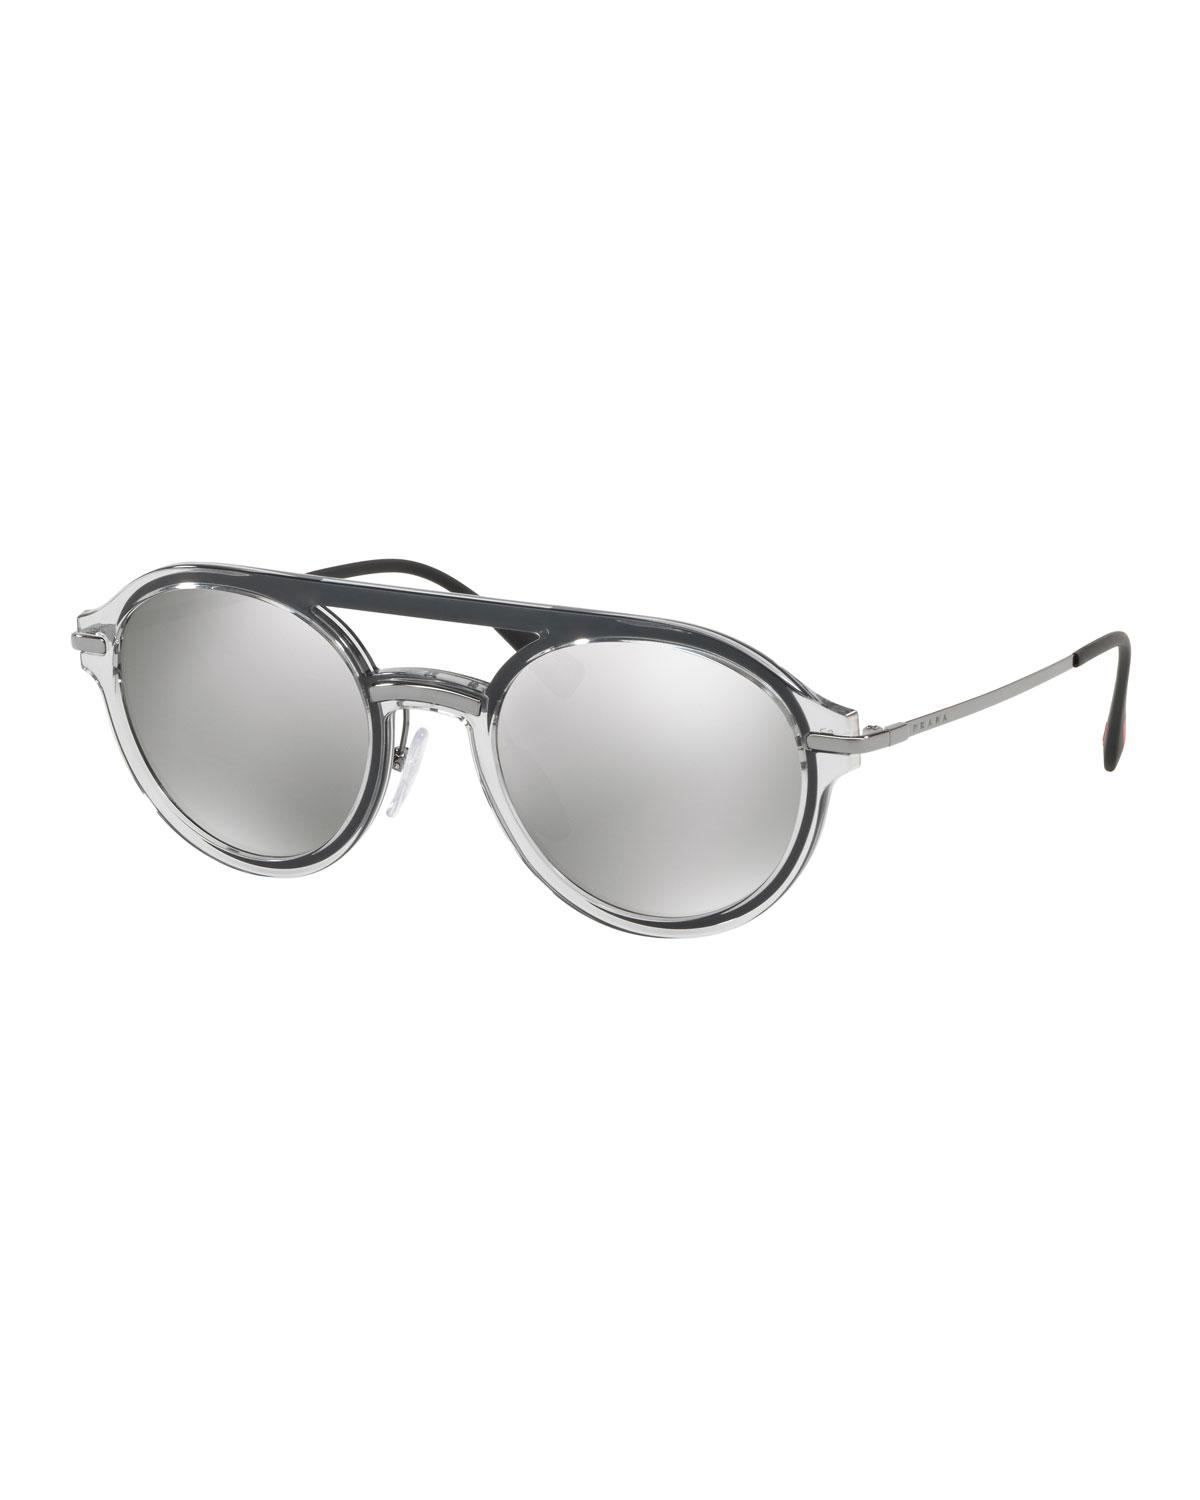 5fd97ede83ca Lyst - Prada Men s Round Plastic Mirrored Sunglasses in Gray